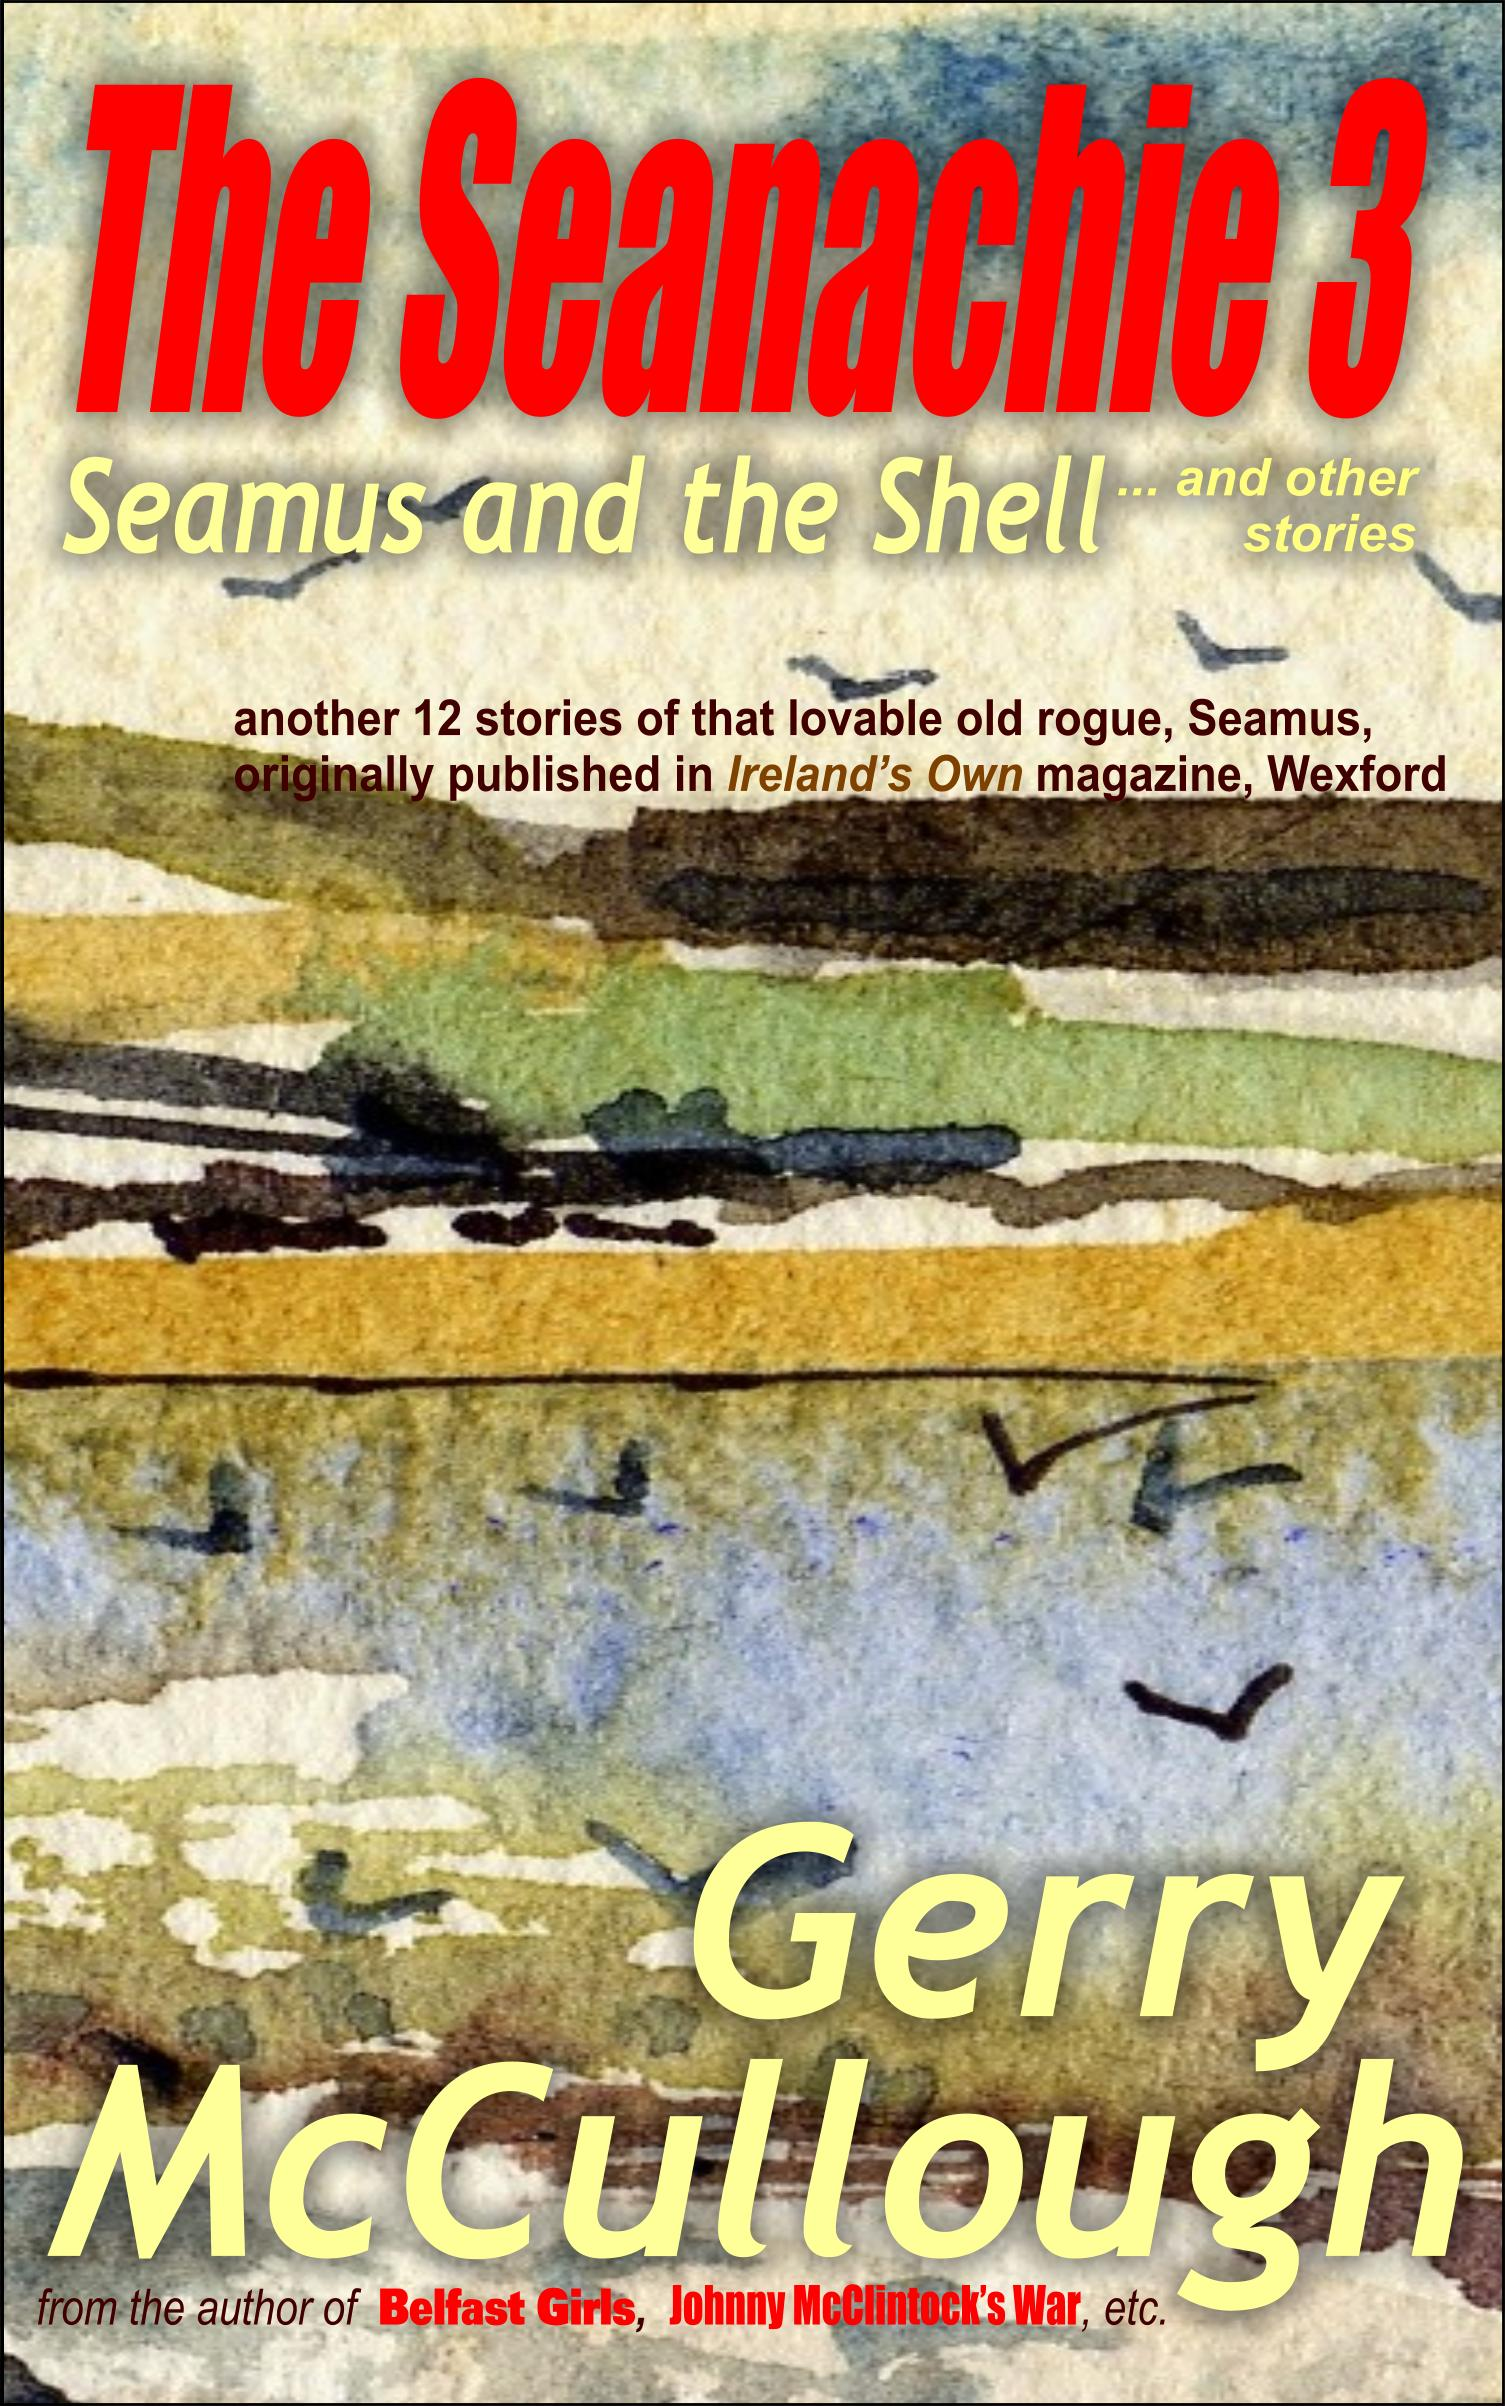 Buy 'The Seanachie 3: Seamus and the Shell and other stories' from Amazon & other outlets